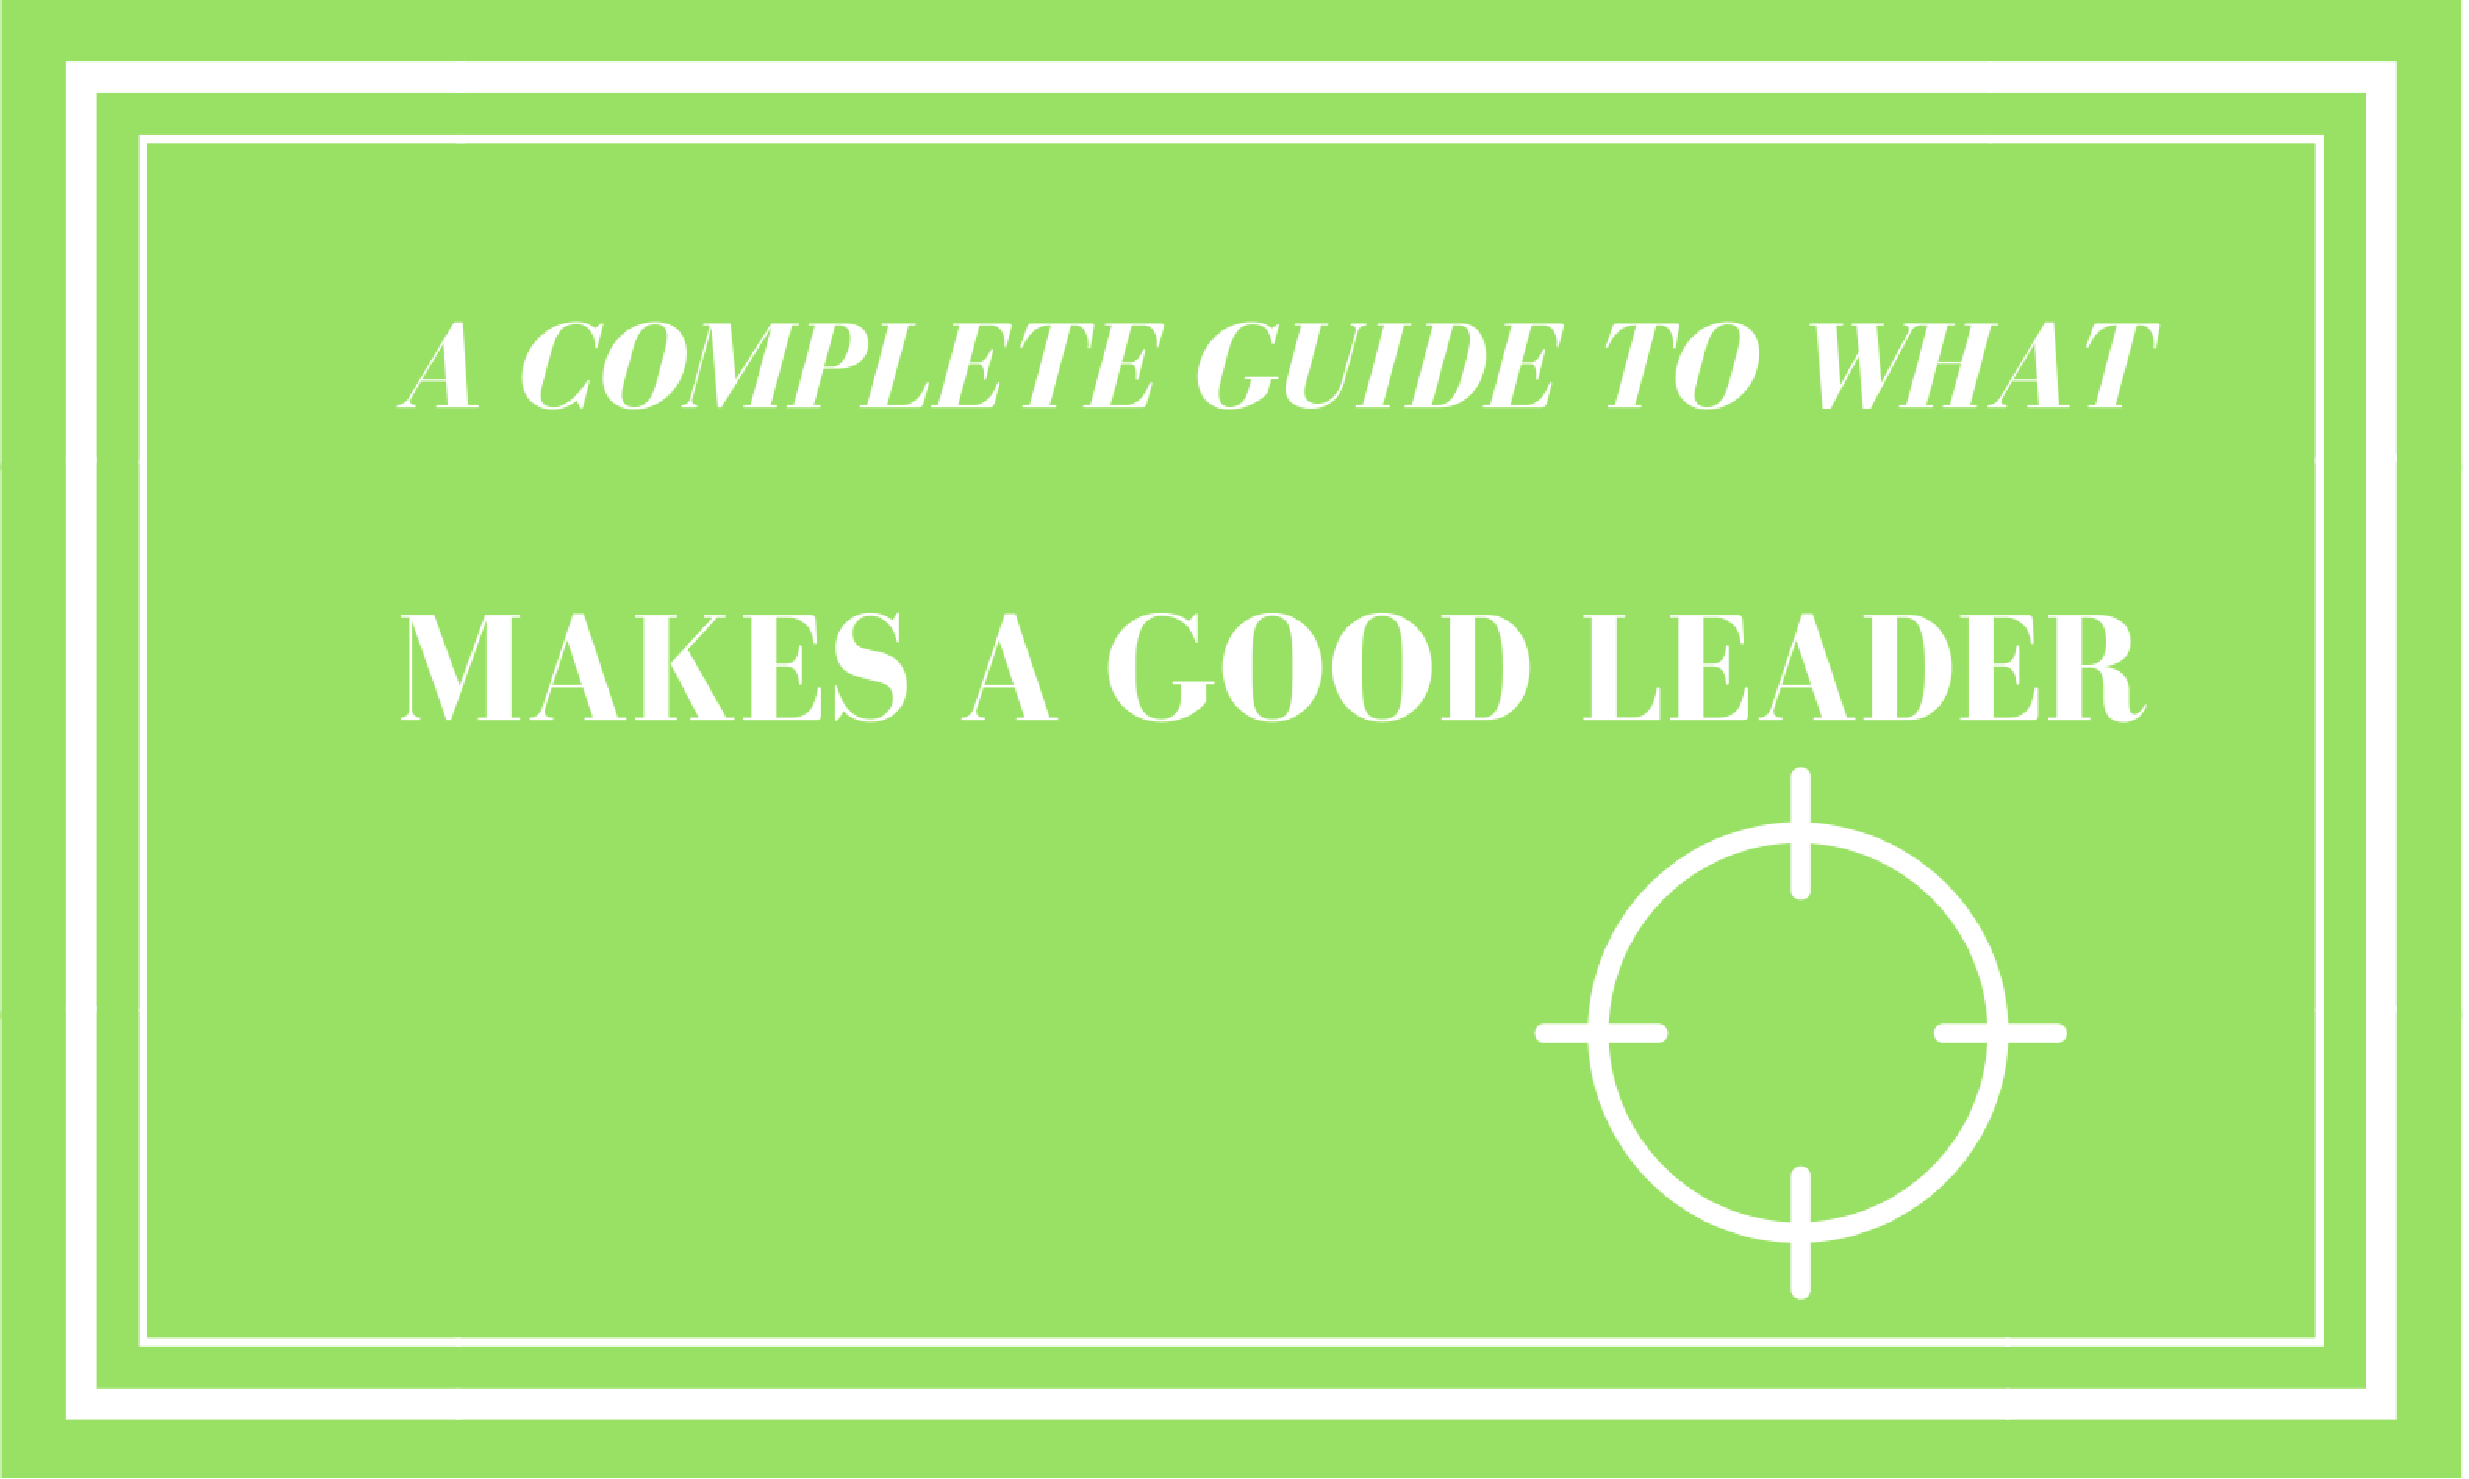 A Complete Guide to What Makes a Good Leader